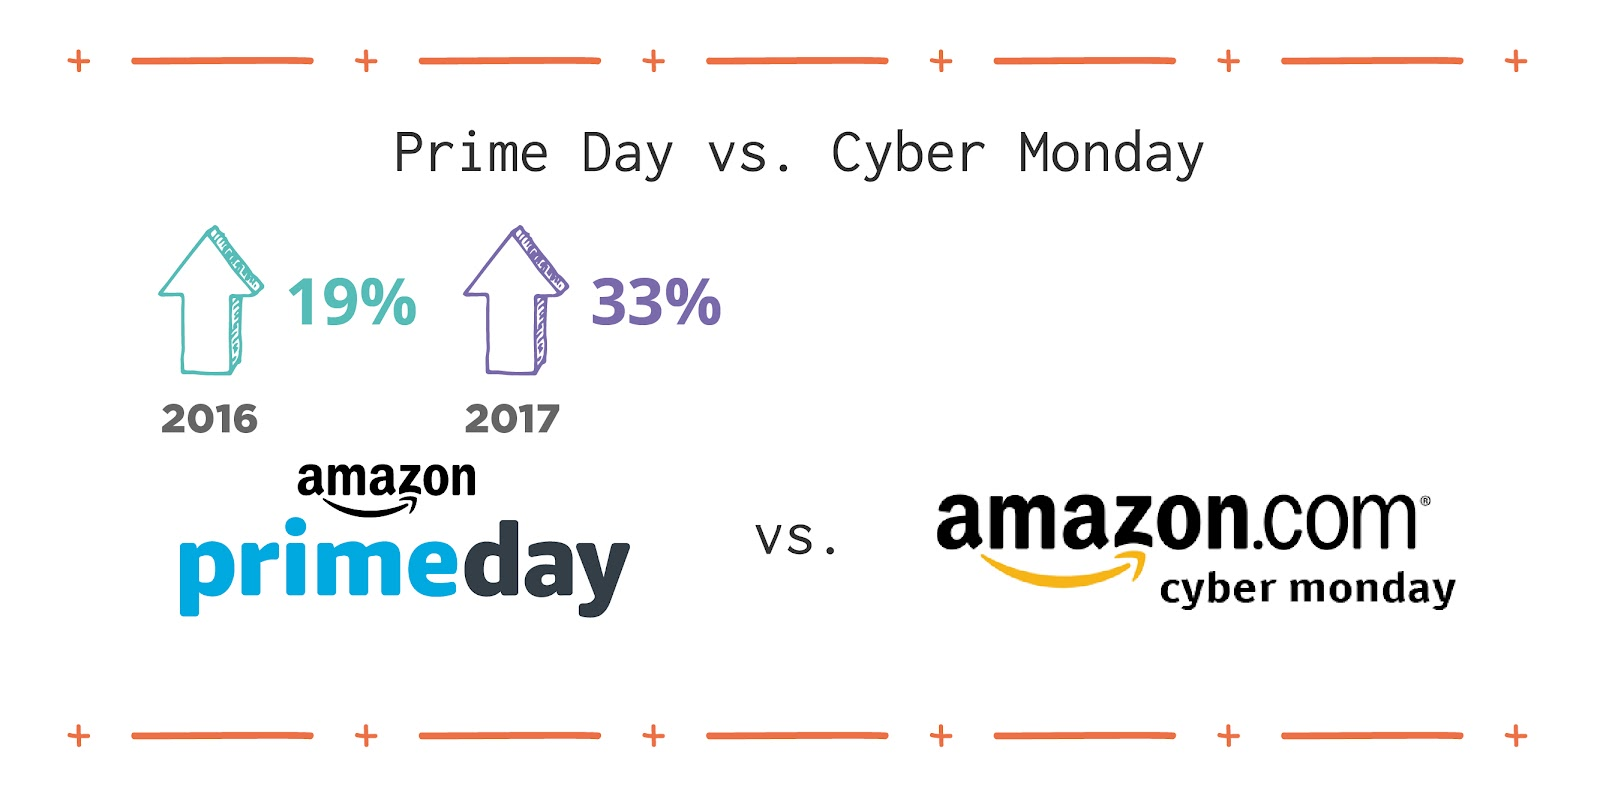 Cyber Monday is a day that holiday sales traditionally go online, and Prime Day has regularly outperformed it, by 19 percent in 2016 and 33 percent in 2017.